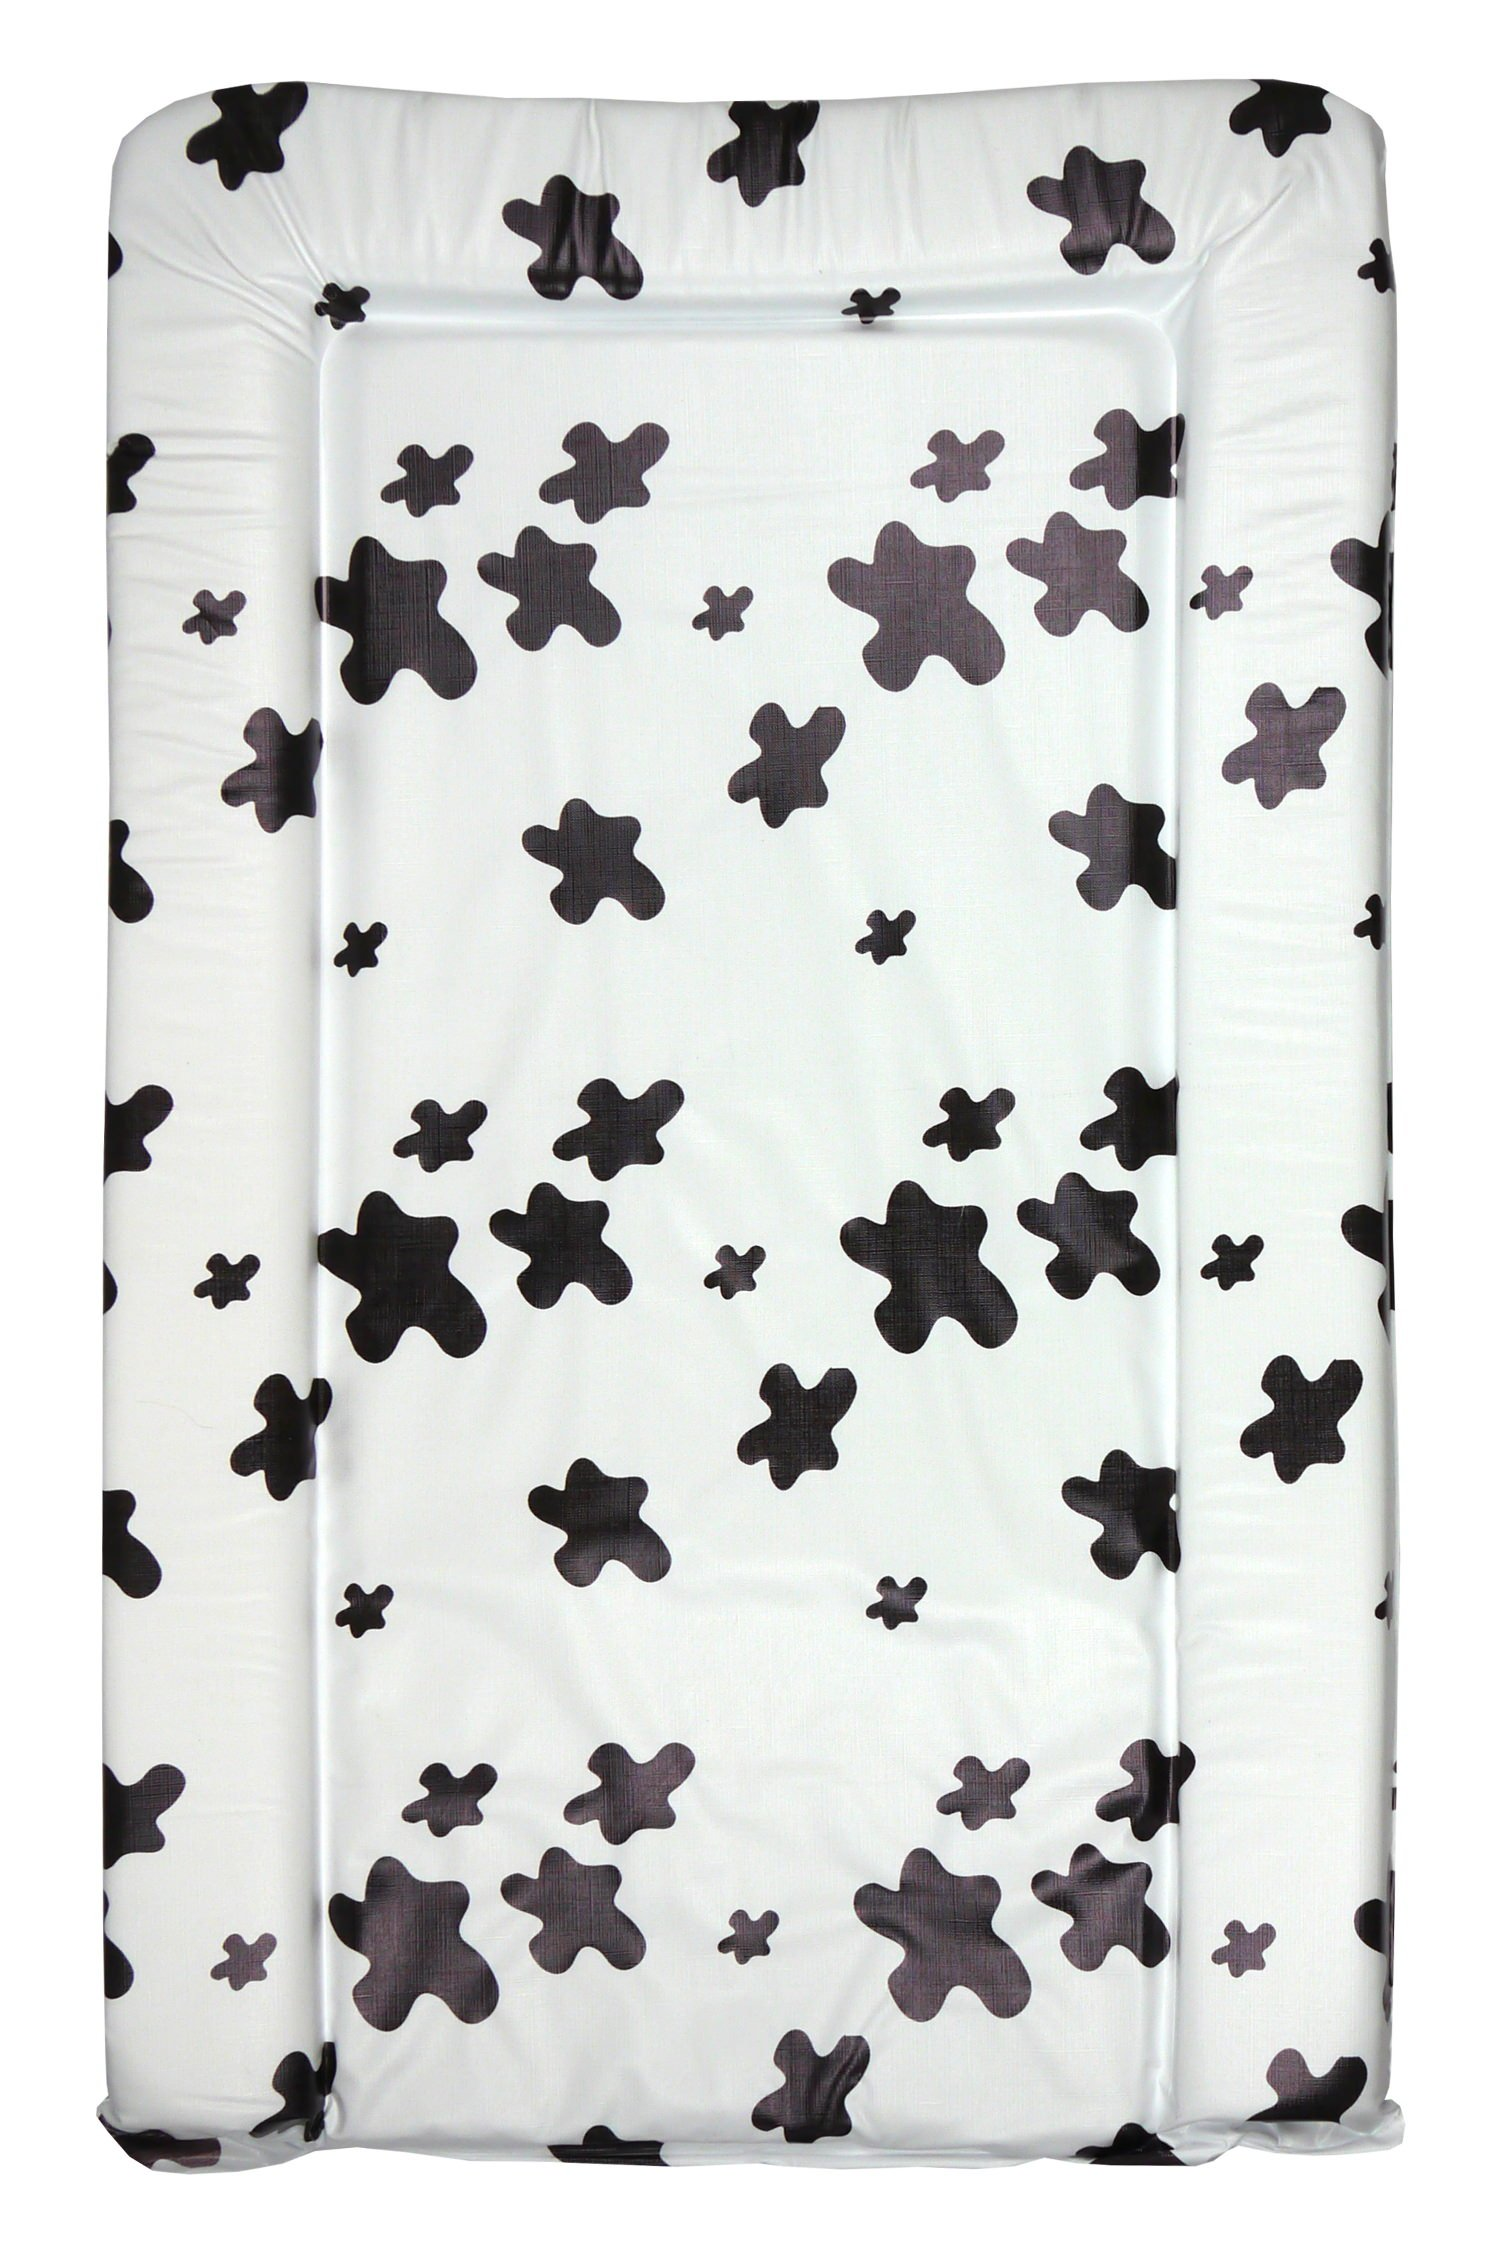 Cow Print Baby Changing Mat - Cow Print Changing Mat